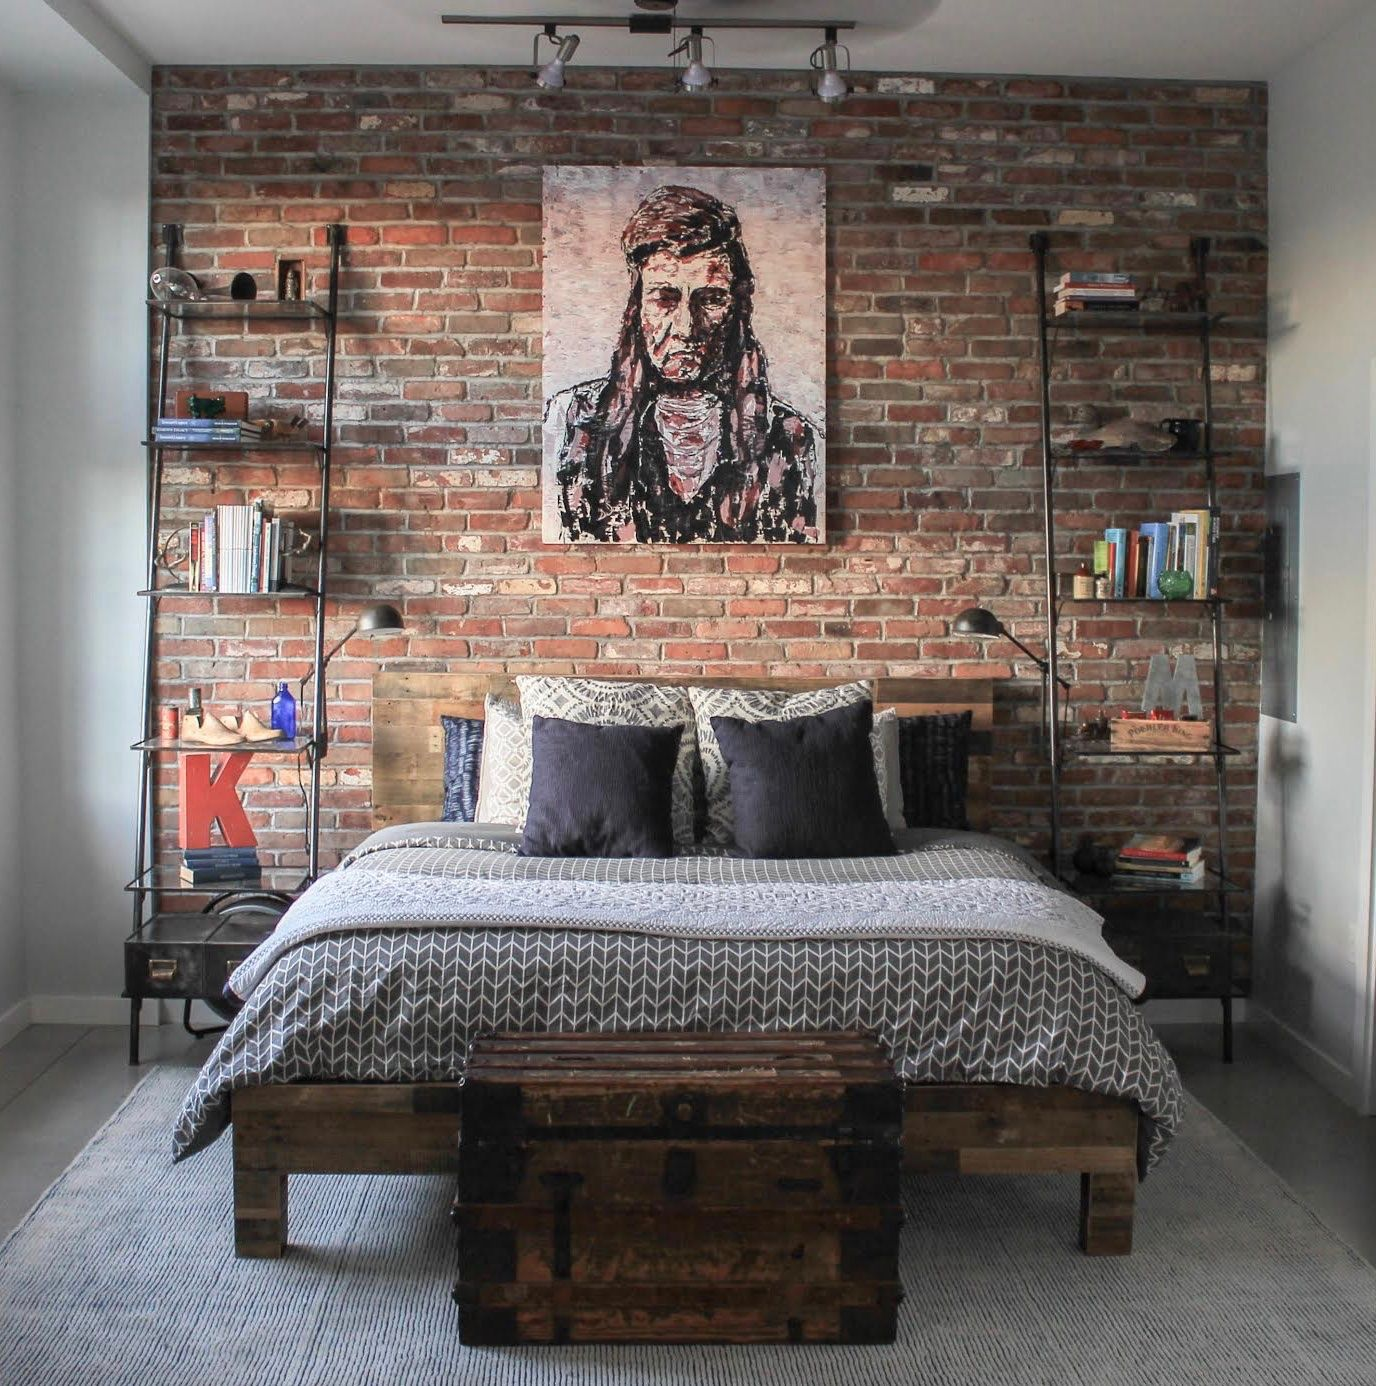 Brick Accent Wall Crumbling: Completed DIY Reclaimed Brick Accent Wall. New England